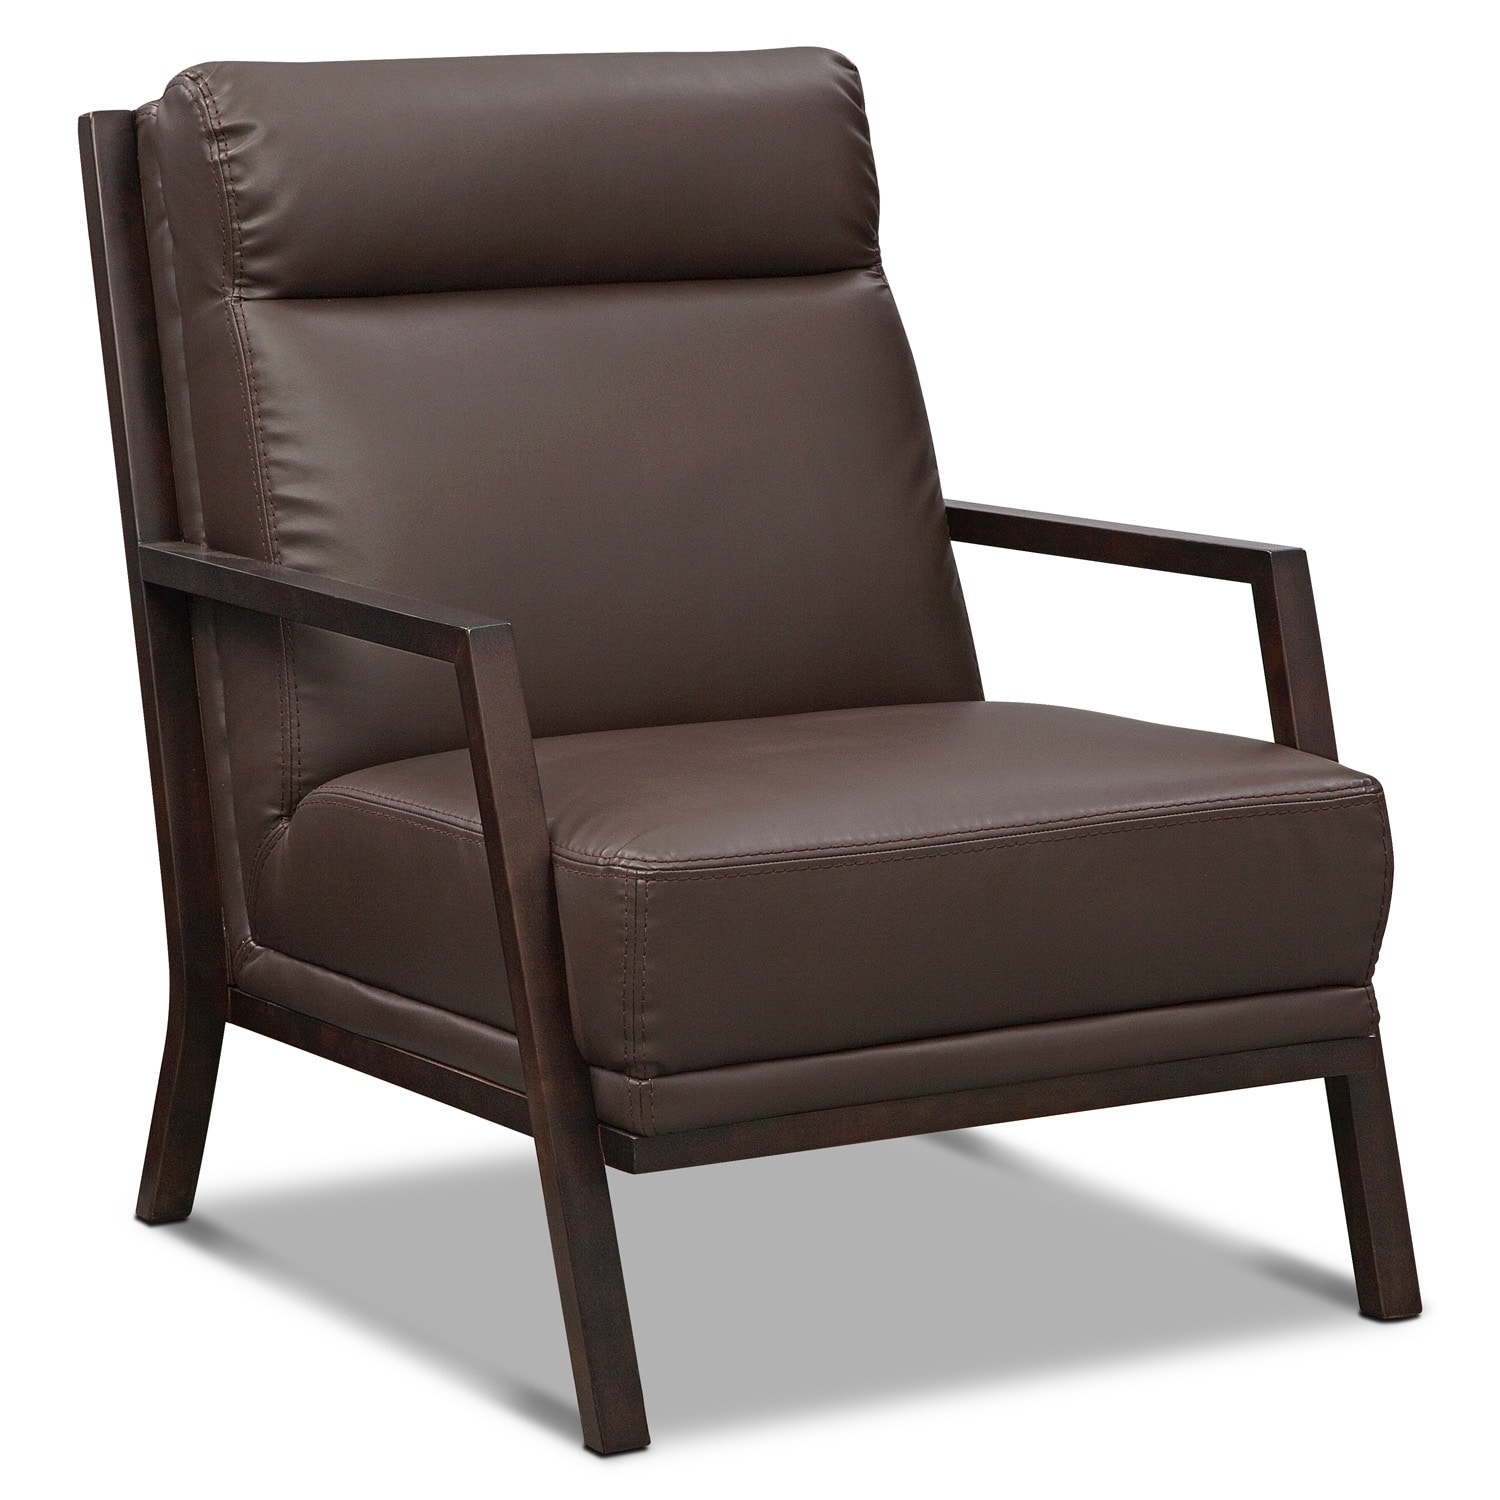 Bowery Accent Chair - Brown